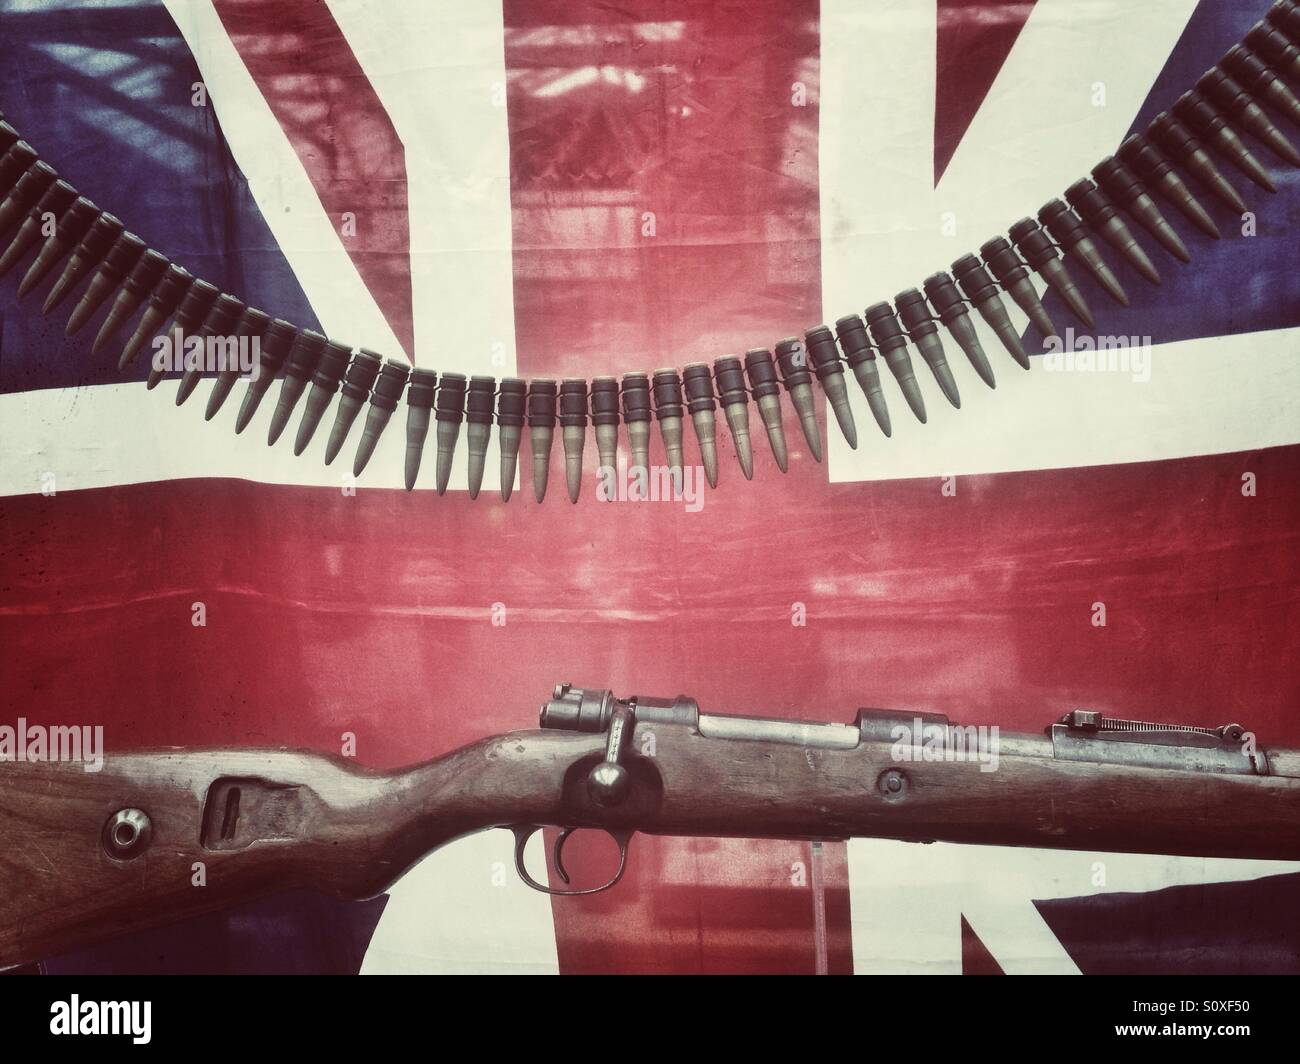 A military rifle and ammunition in front of a union jack - Stock Image